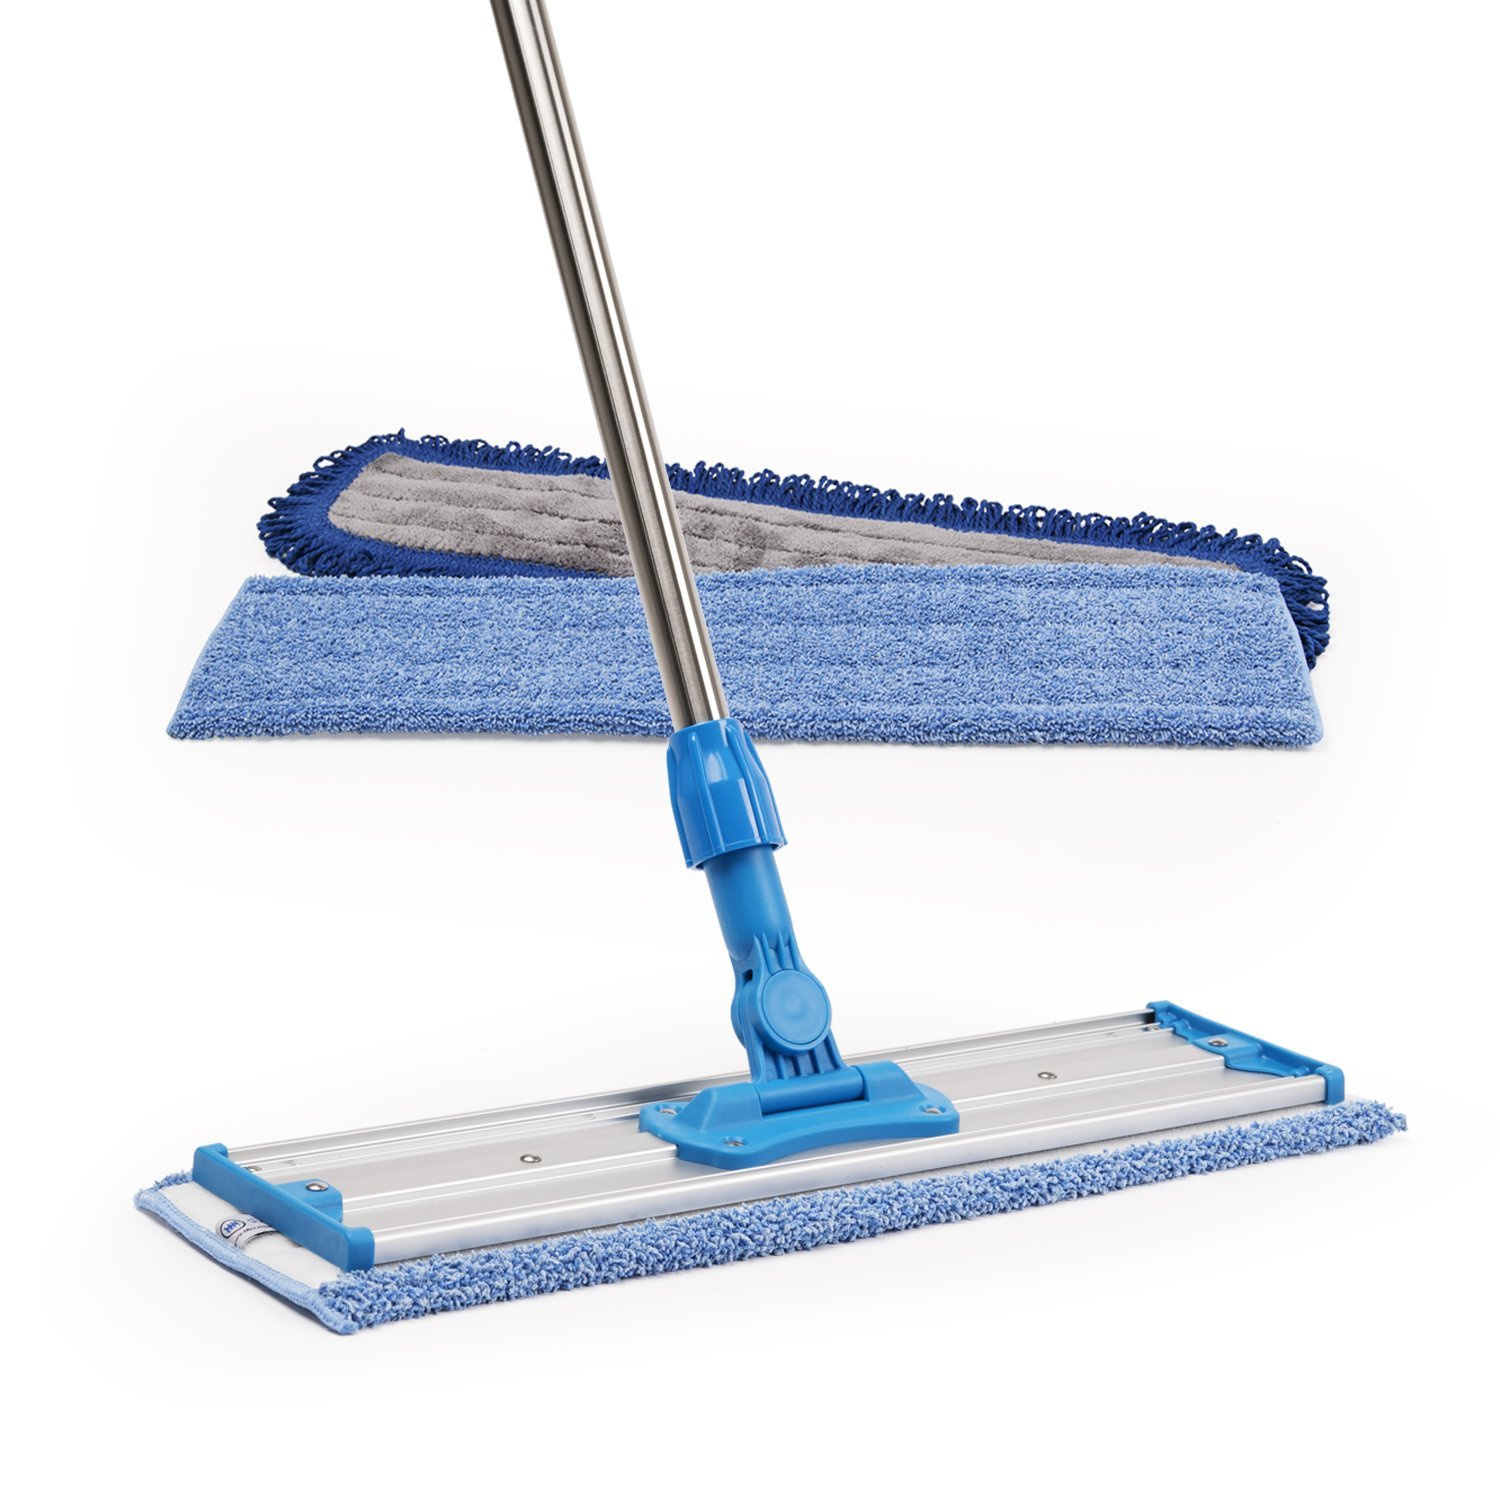 Best mop for laminate floors 2018 reviews ultimate buying guide 18 professional microfiber mop stainless steel handle premium mop pads dailygadgetfo Gallery